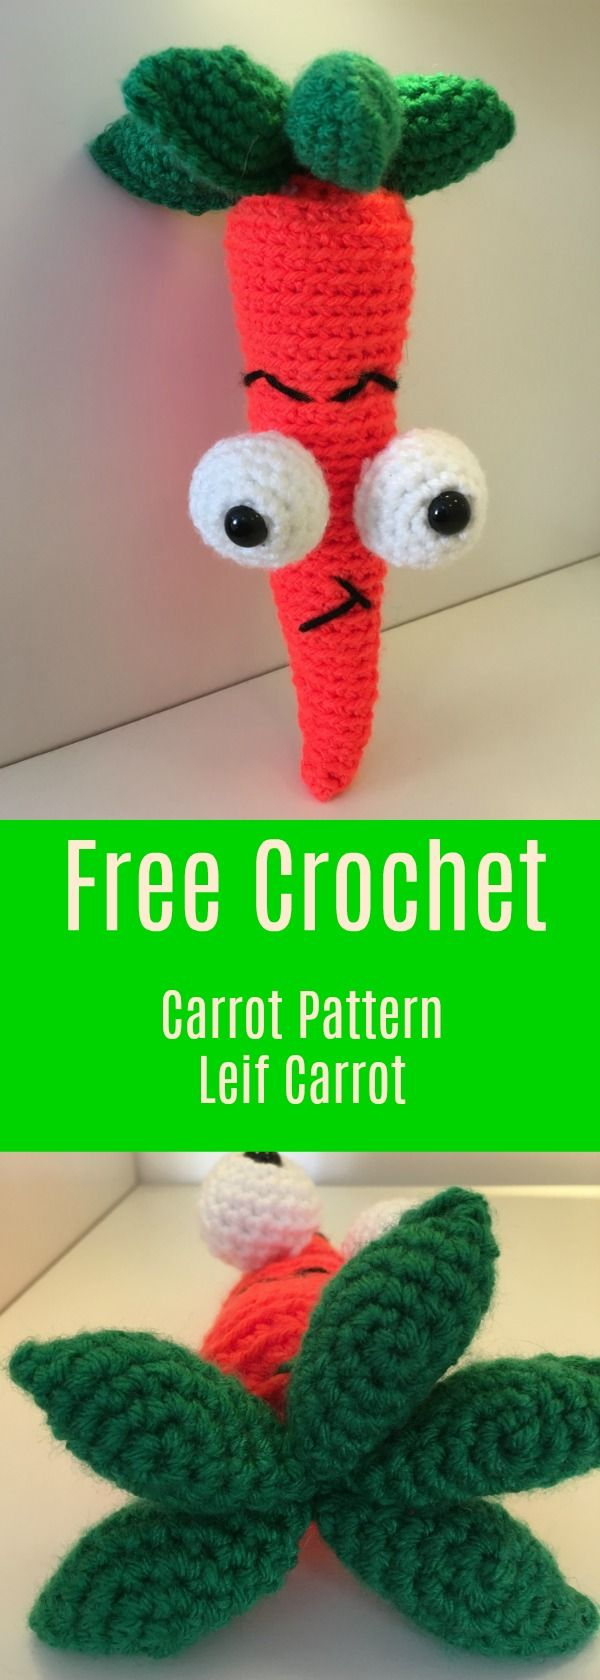 Crochet your own Carrot with an attitude.